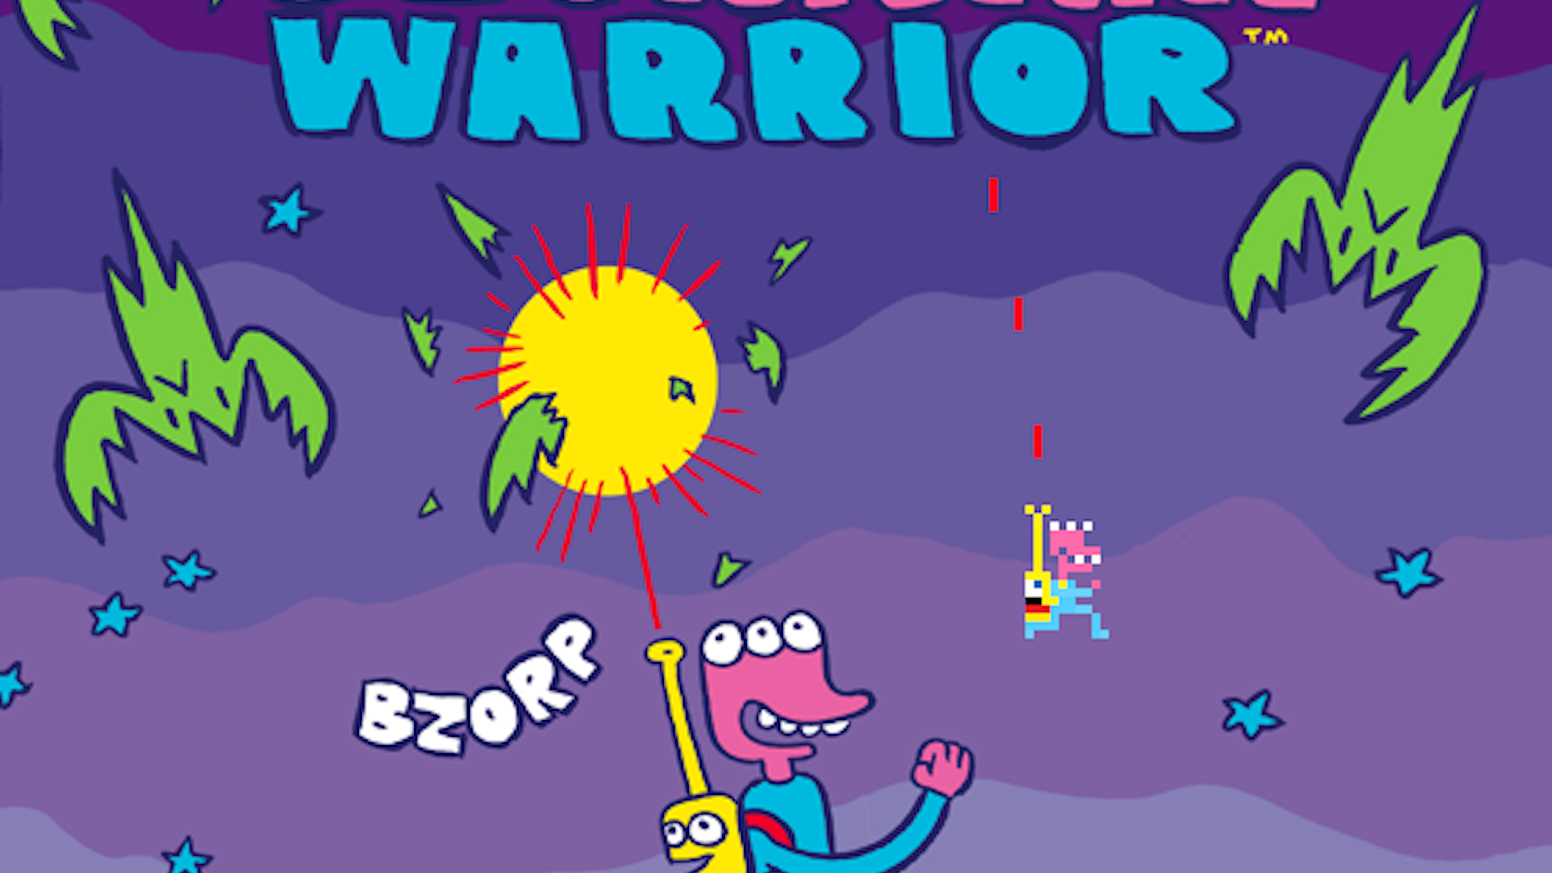 James Kochalka and Pixeljam are making a video game called Glorkian Warrior.